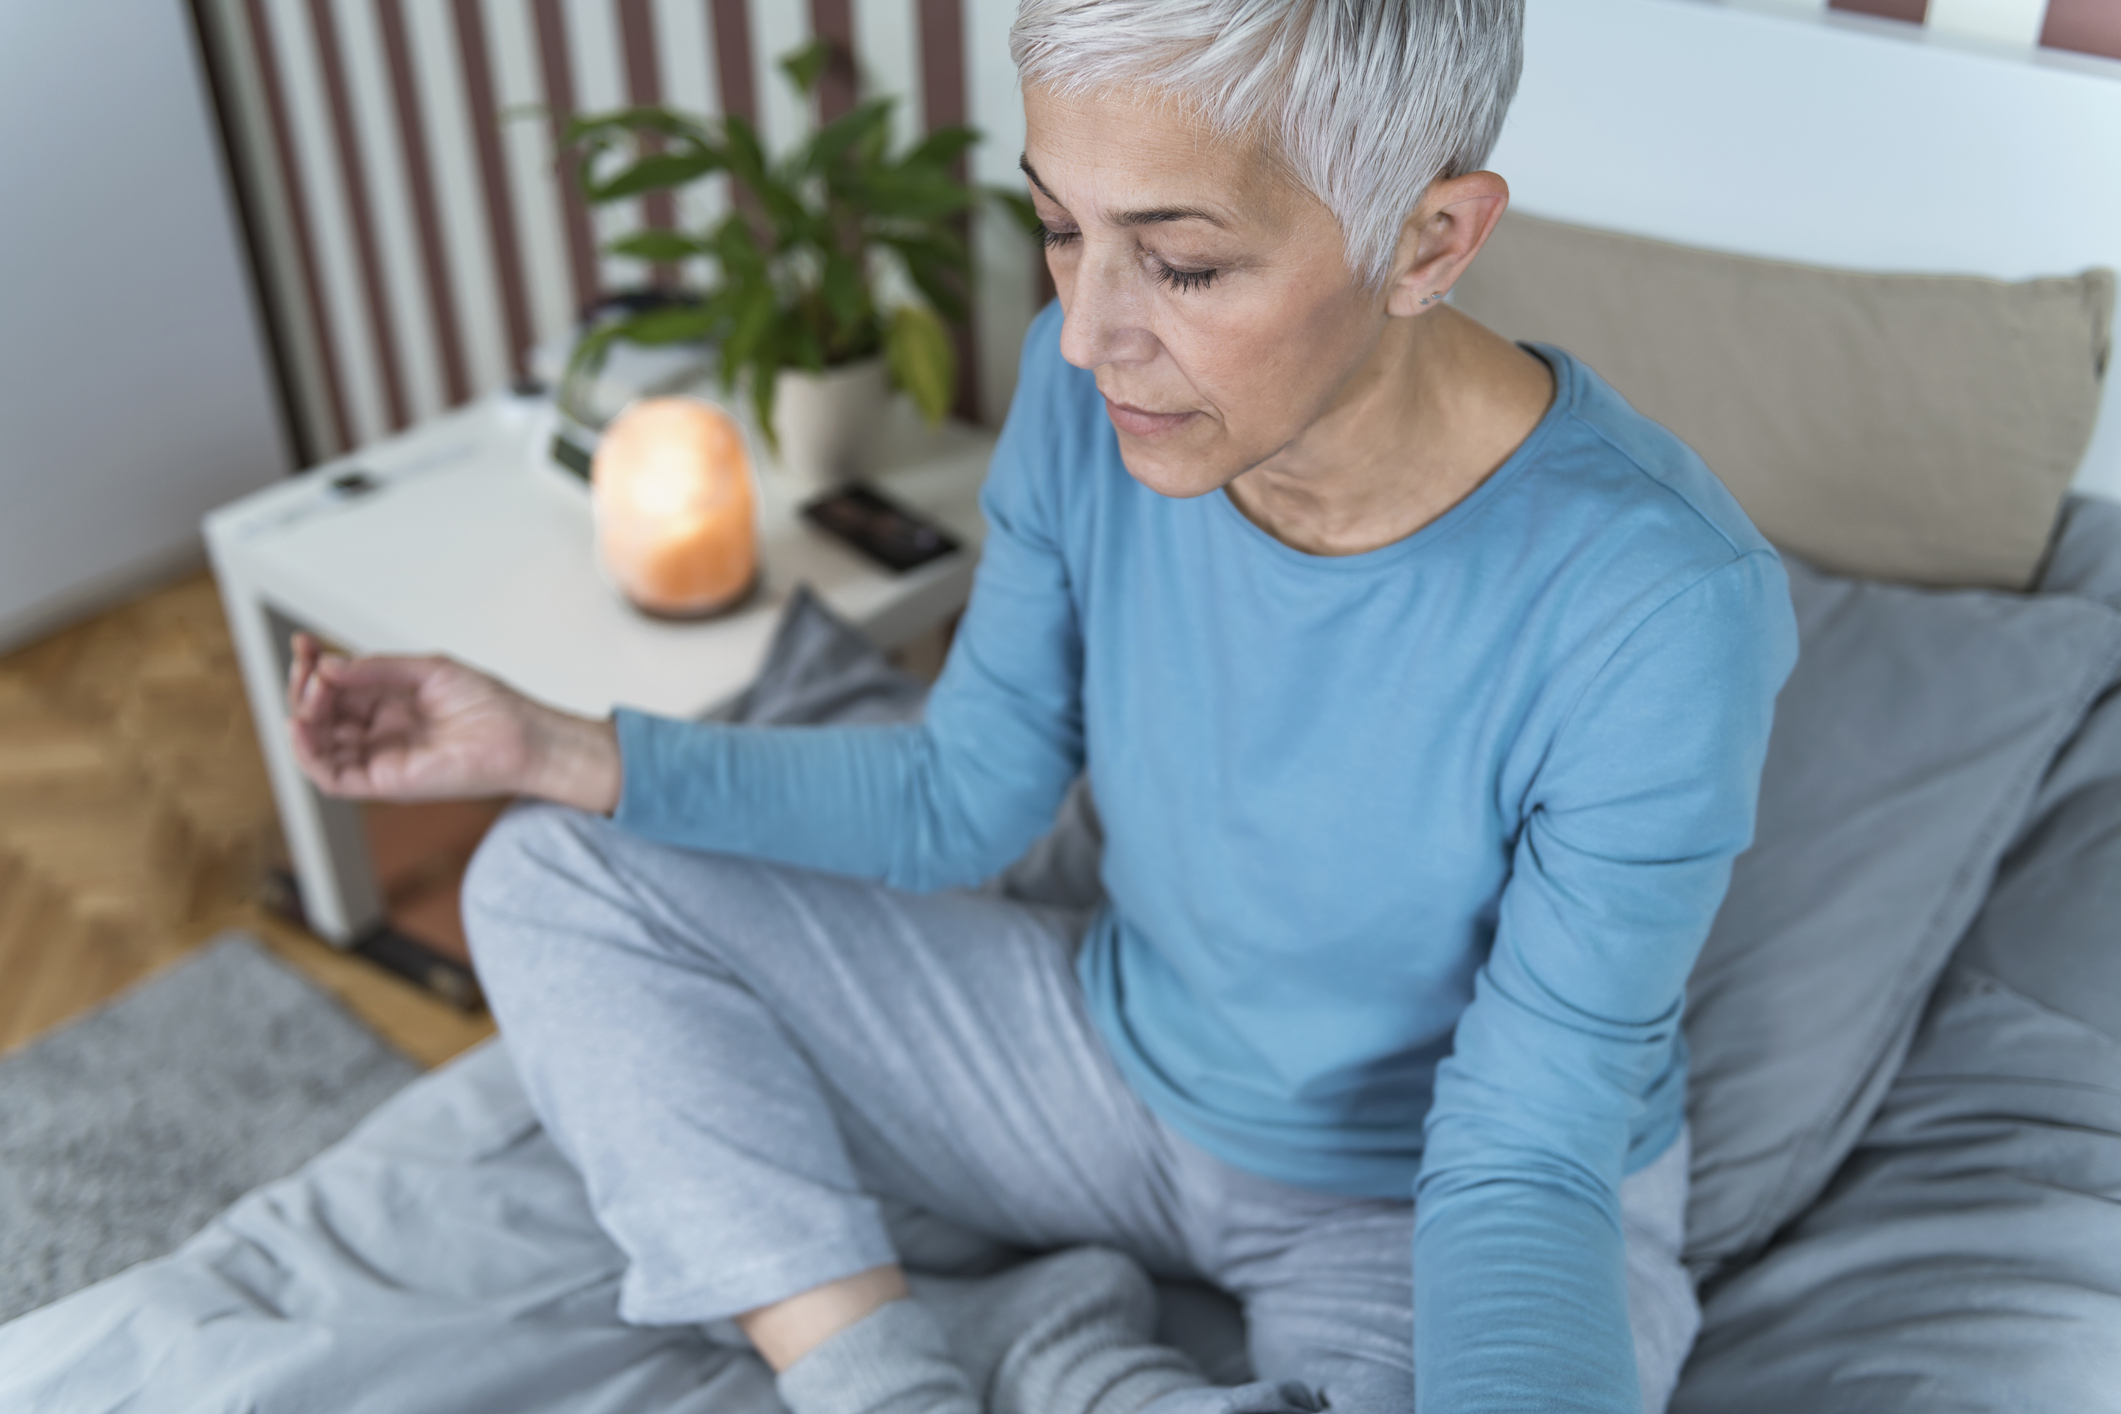 Spiritual fitness: The missing link for brain health